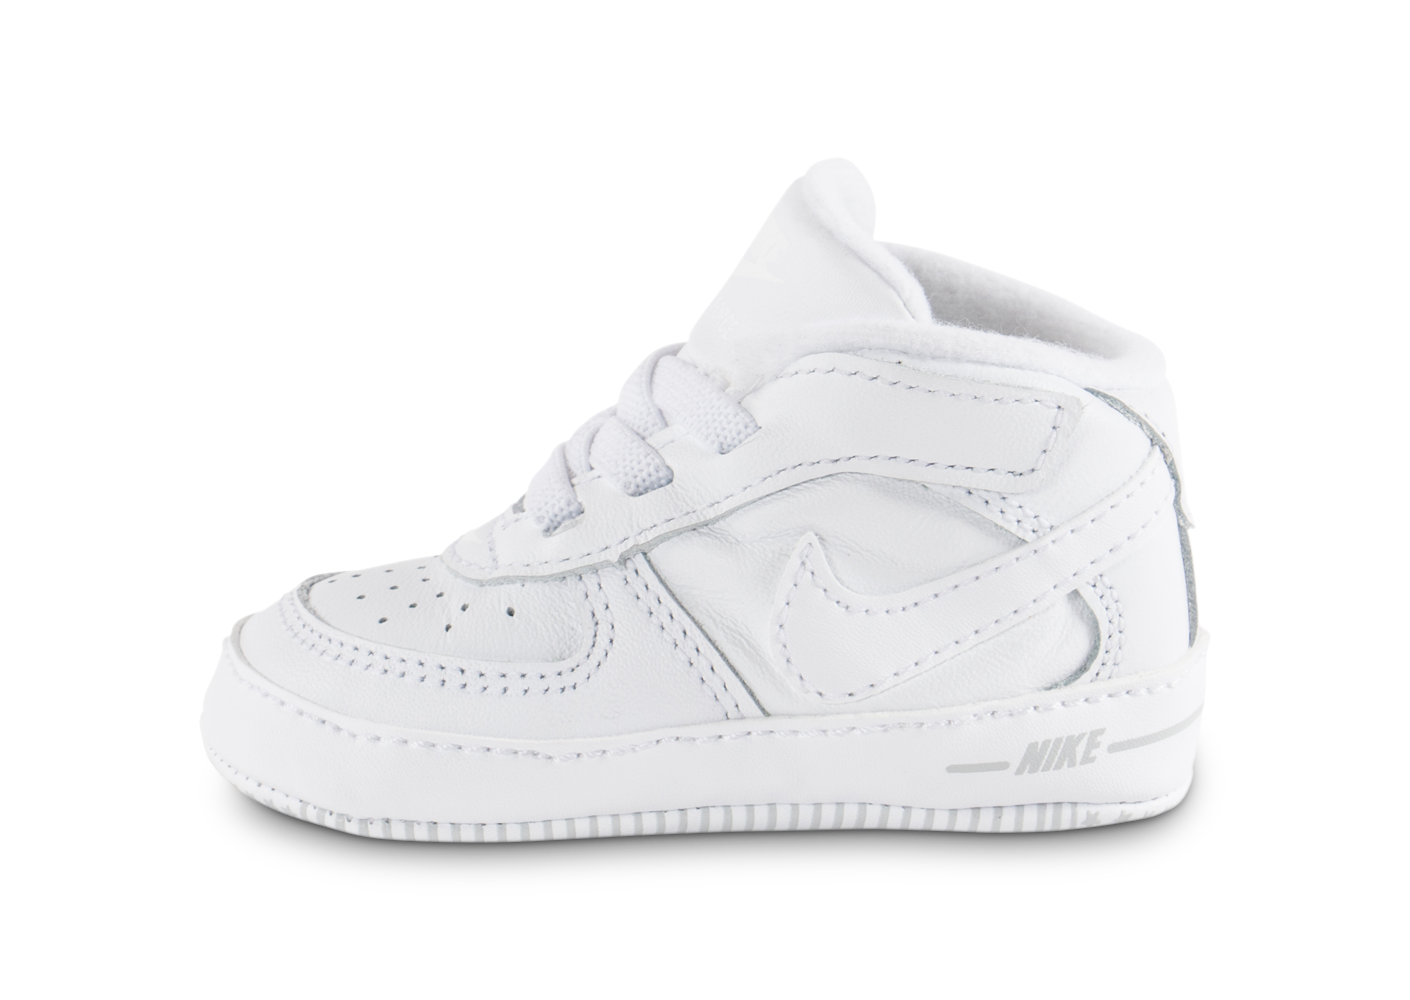 903539d122a23 Baskets nike chaussons air force 1 bébé blancs